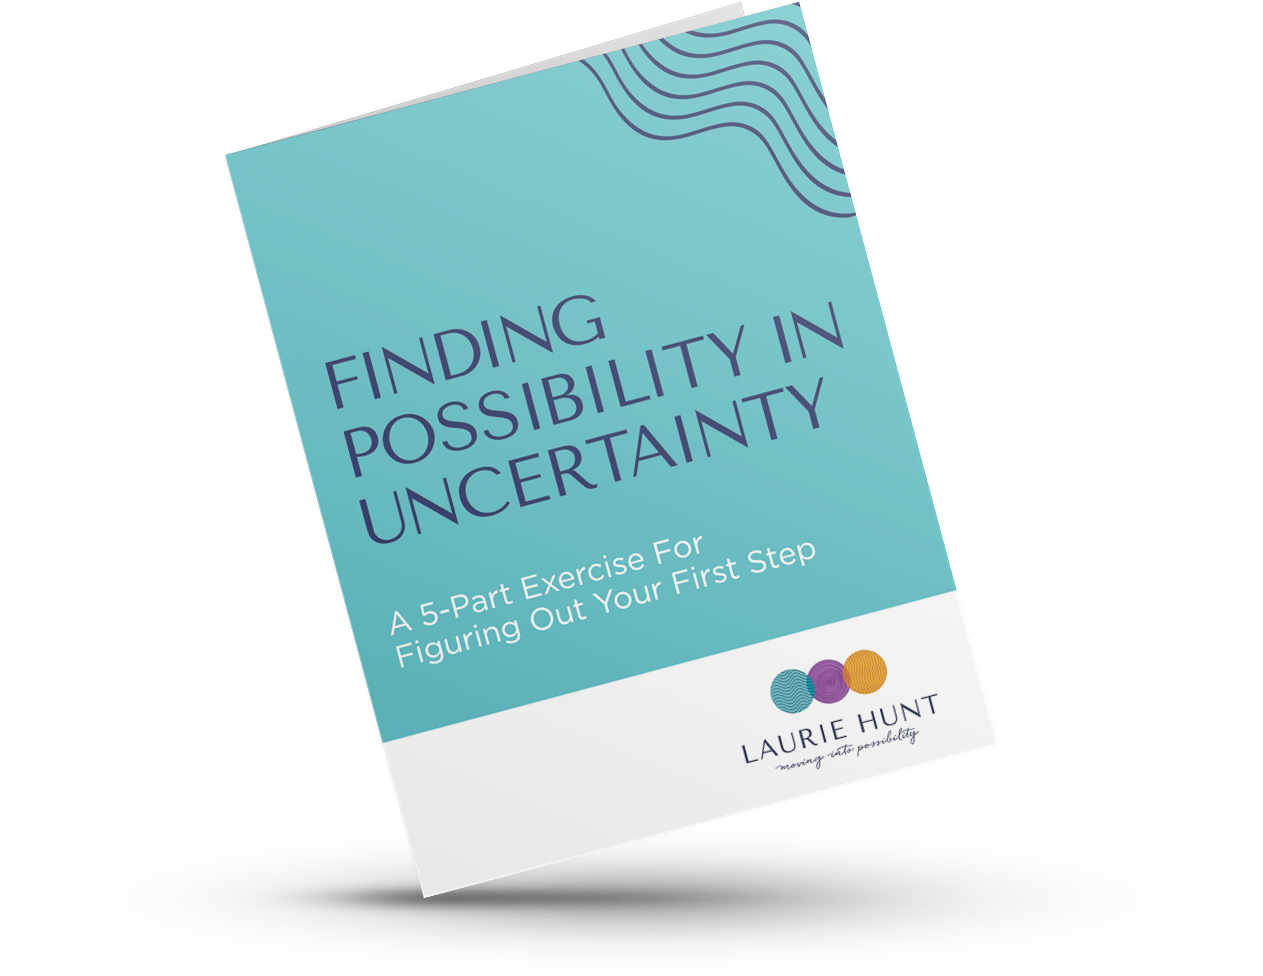 Mockup image of Finding Possibility in Uncertainty Guide